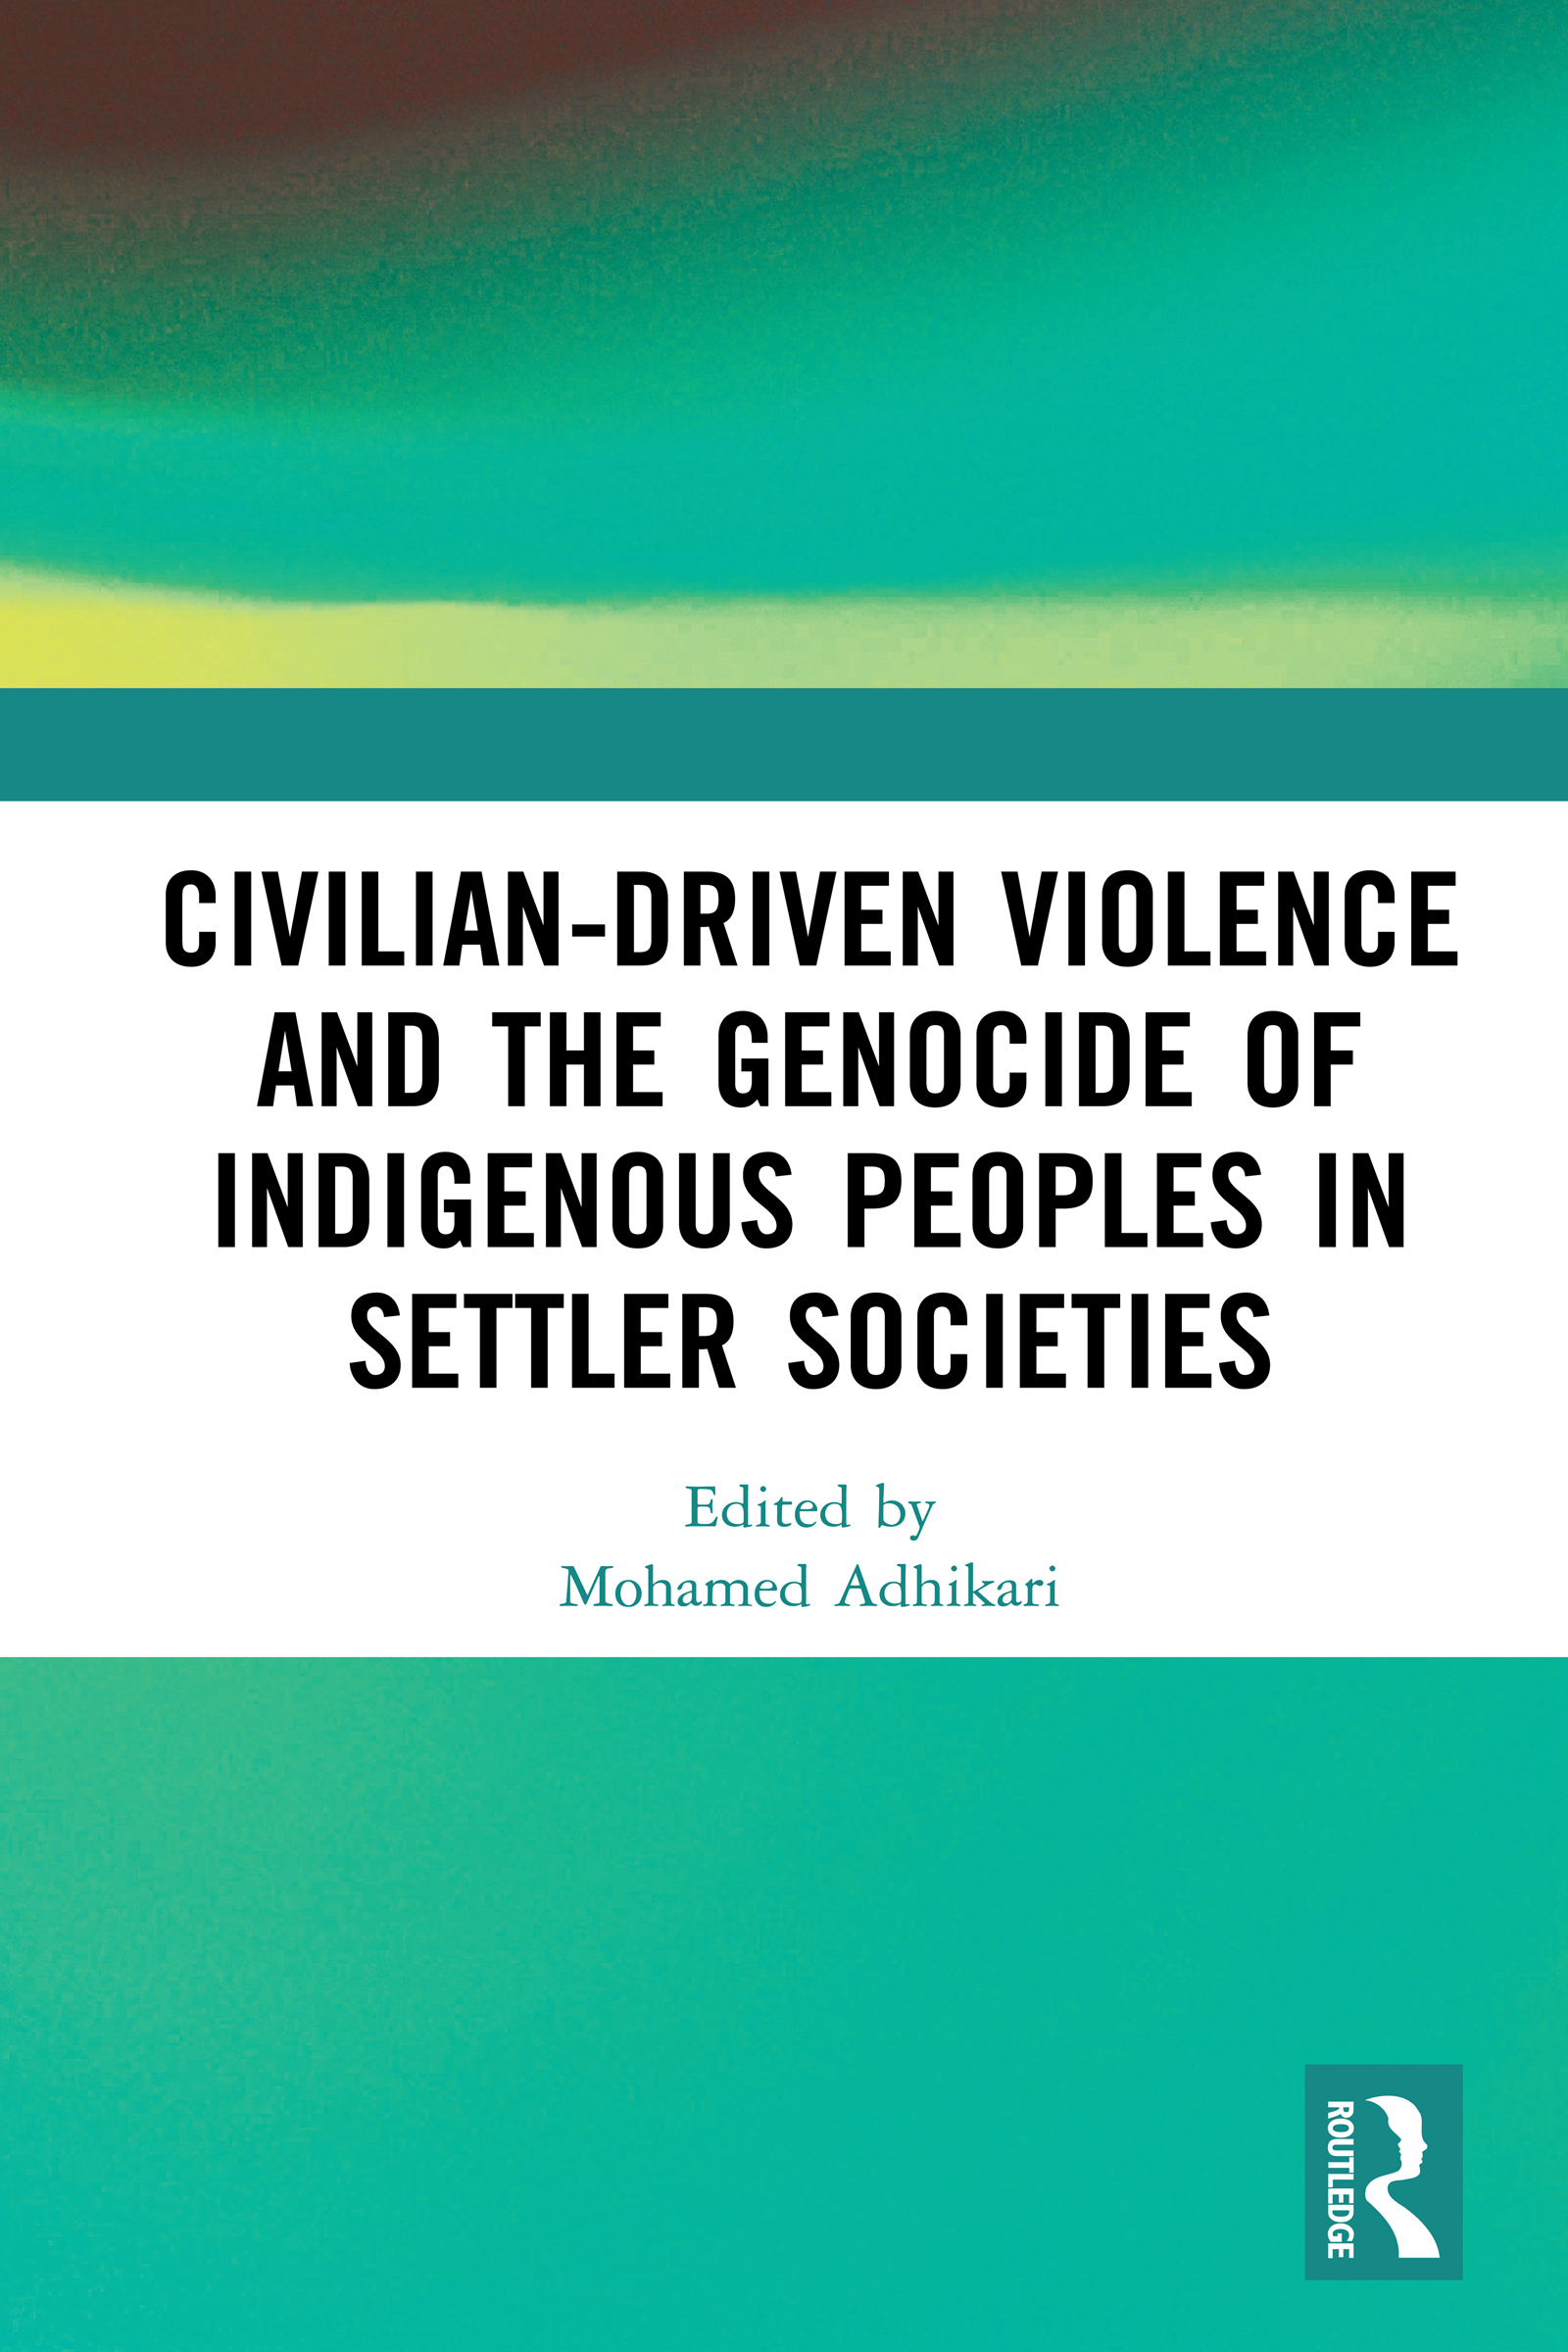 Civilian-Driven Violence and the Genocide of Indigenous Peoples in Settler Societies